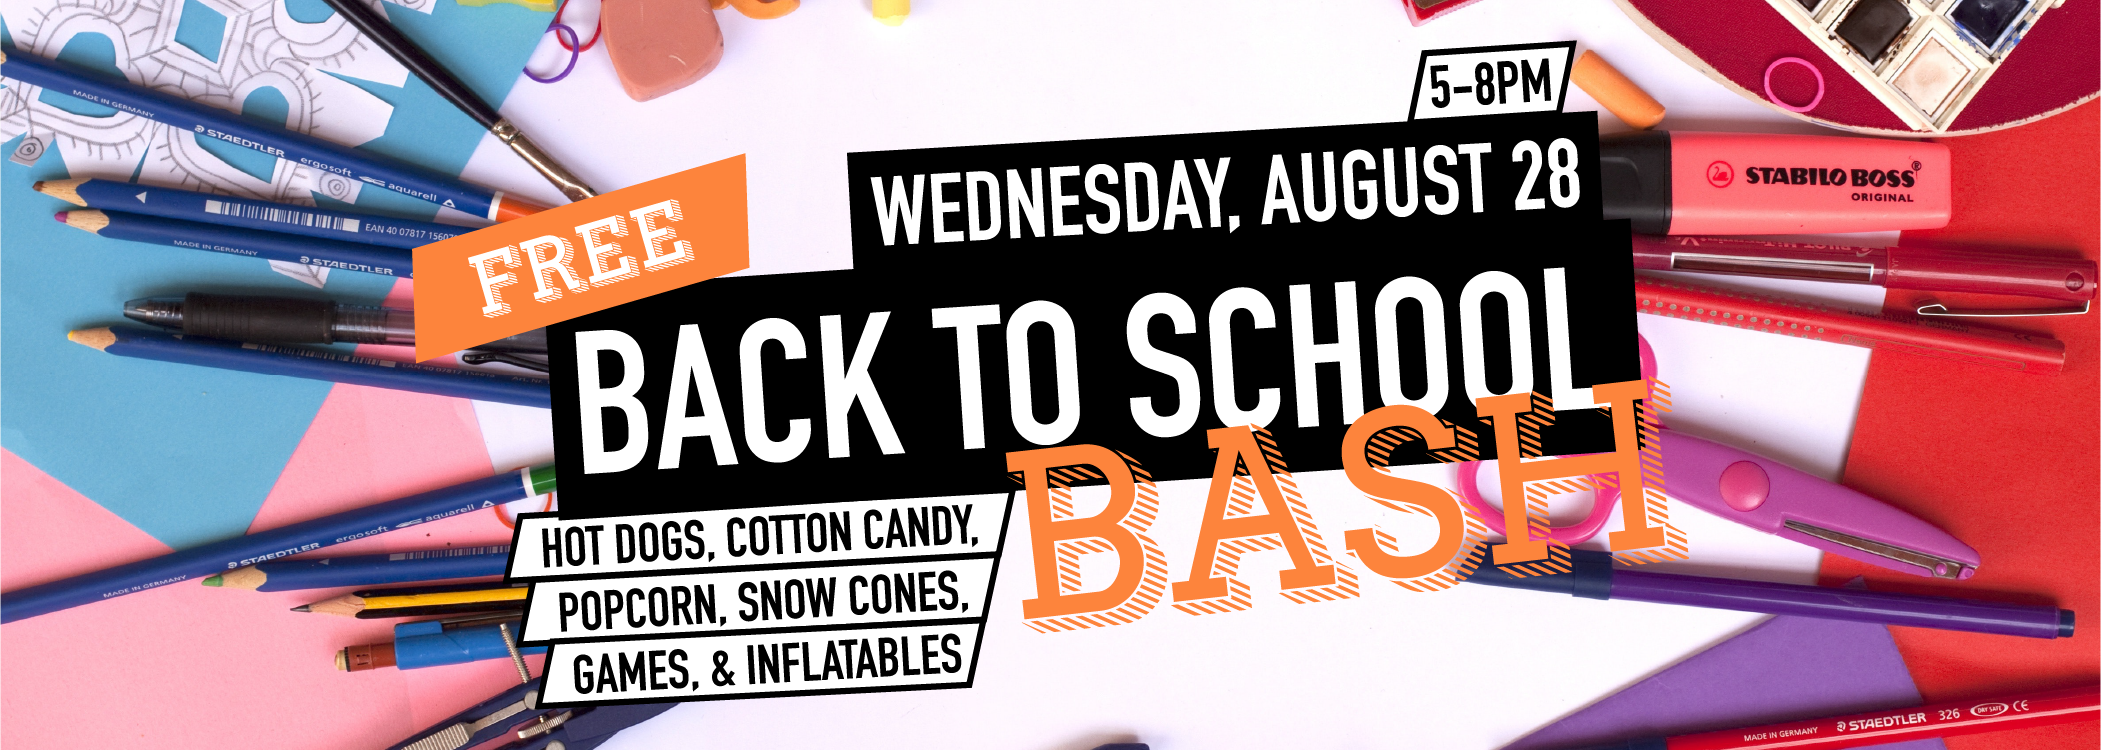 Back to School - BANNER-04.png